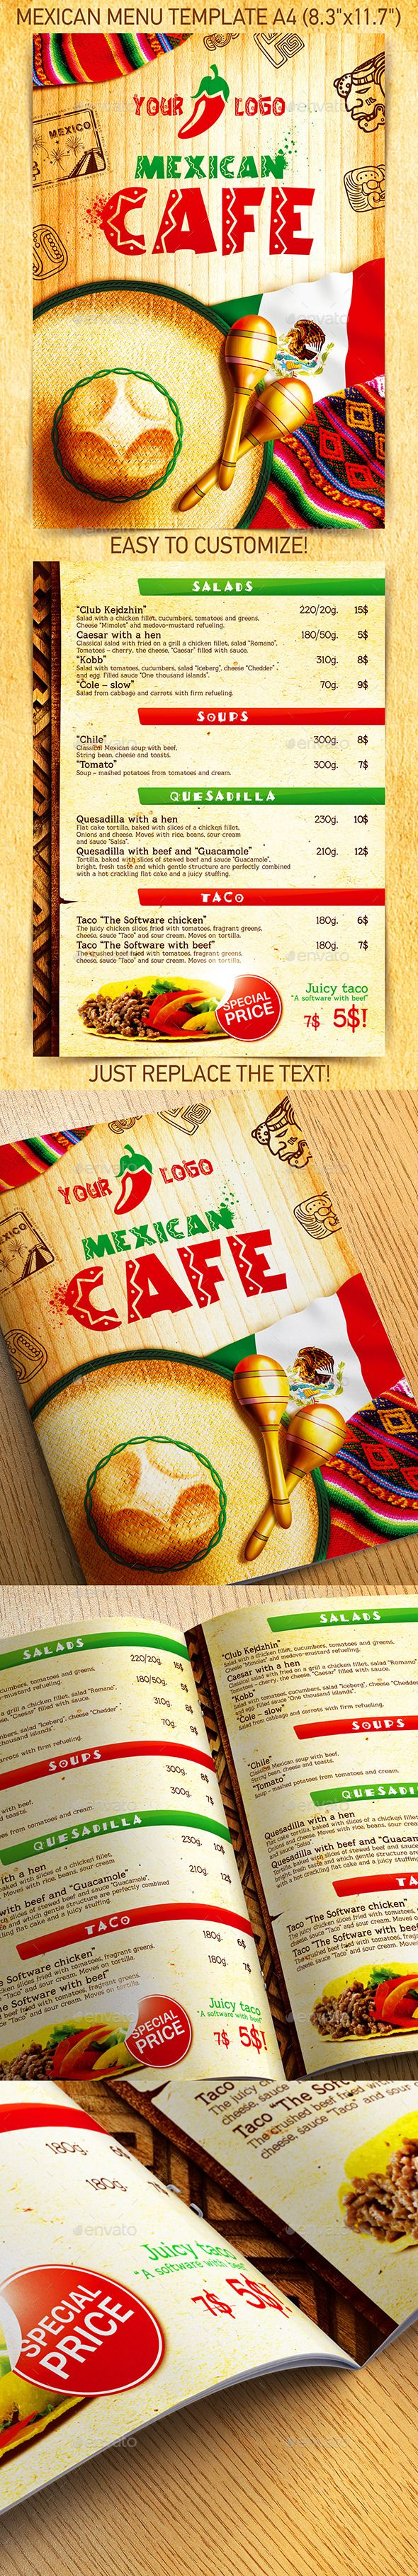 Mexican Menu Template Vol2 Pinterest Mexican Menu Menu